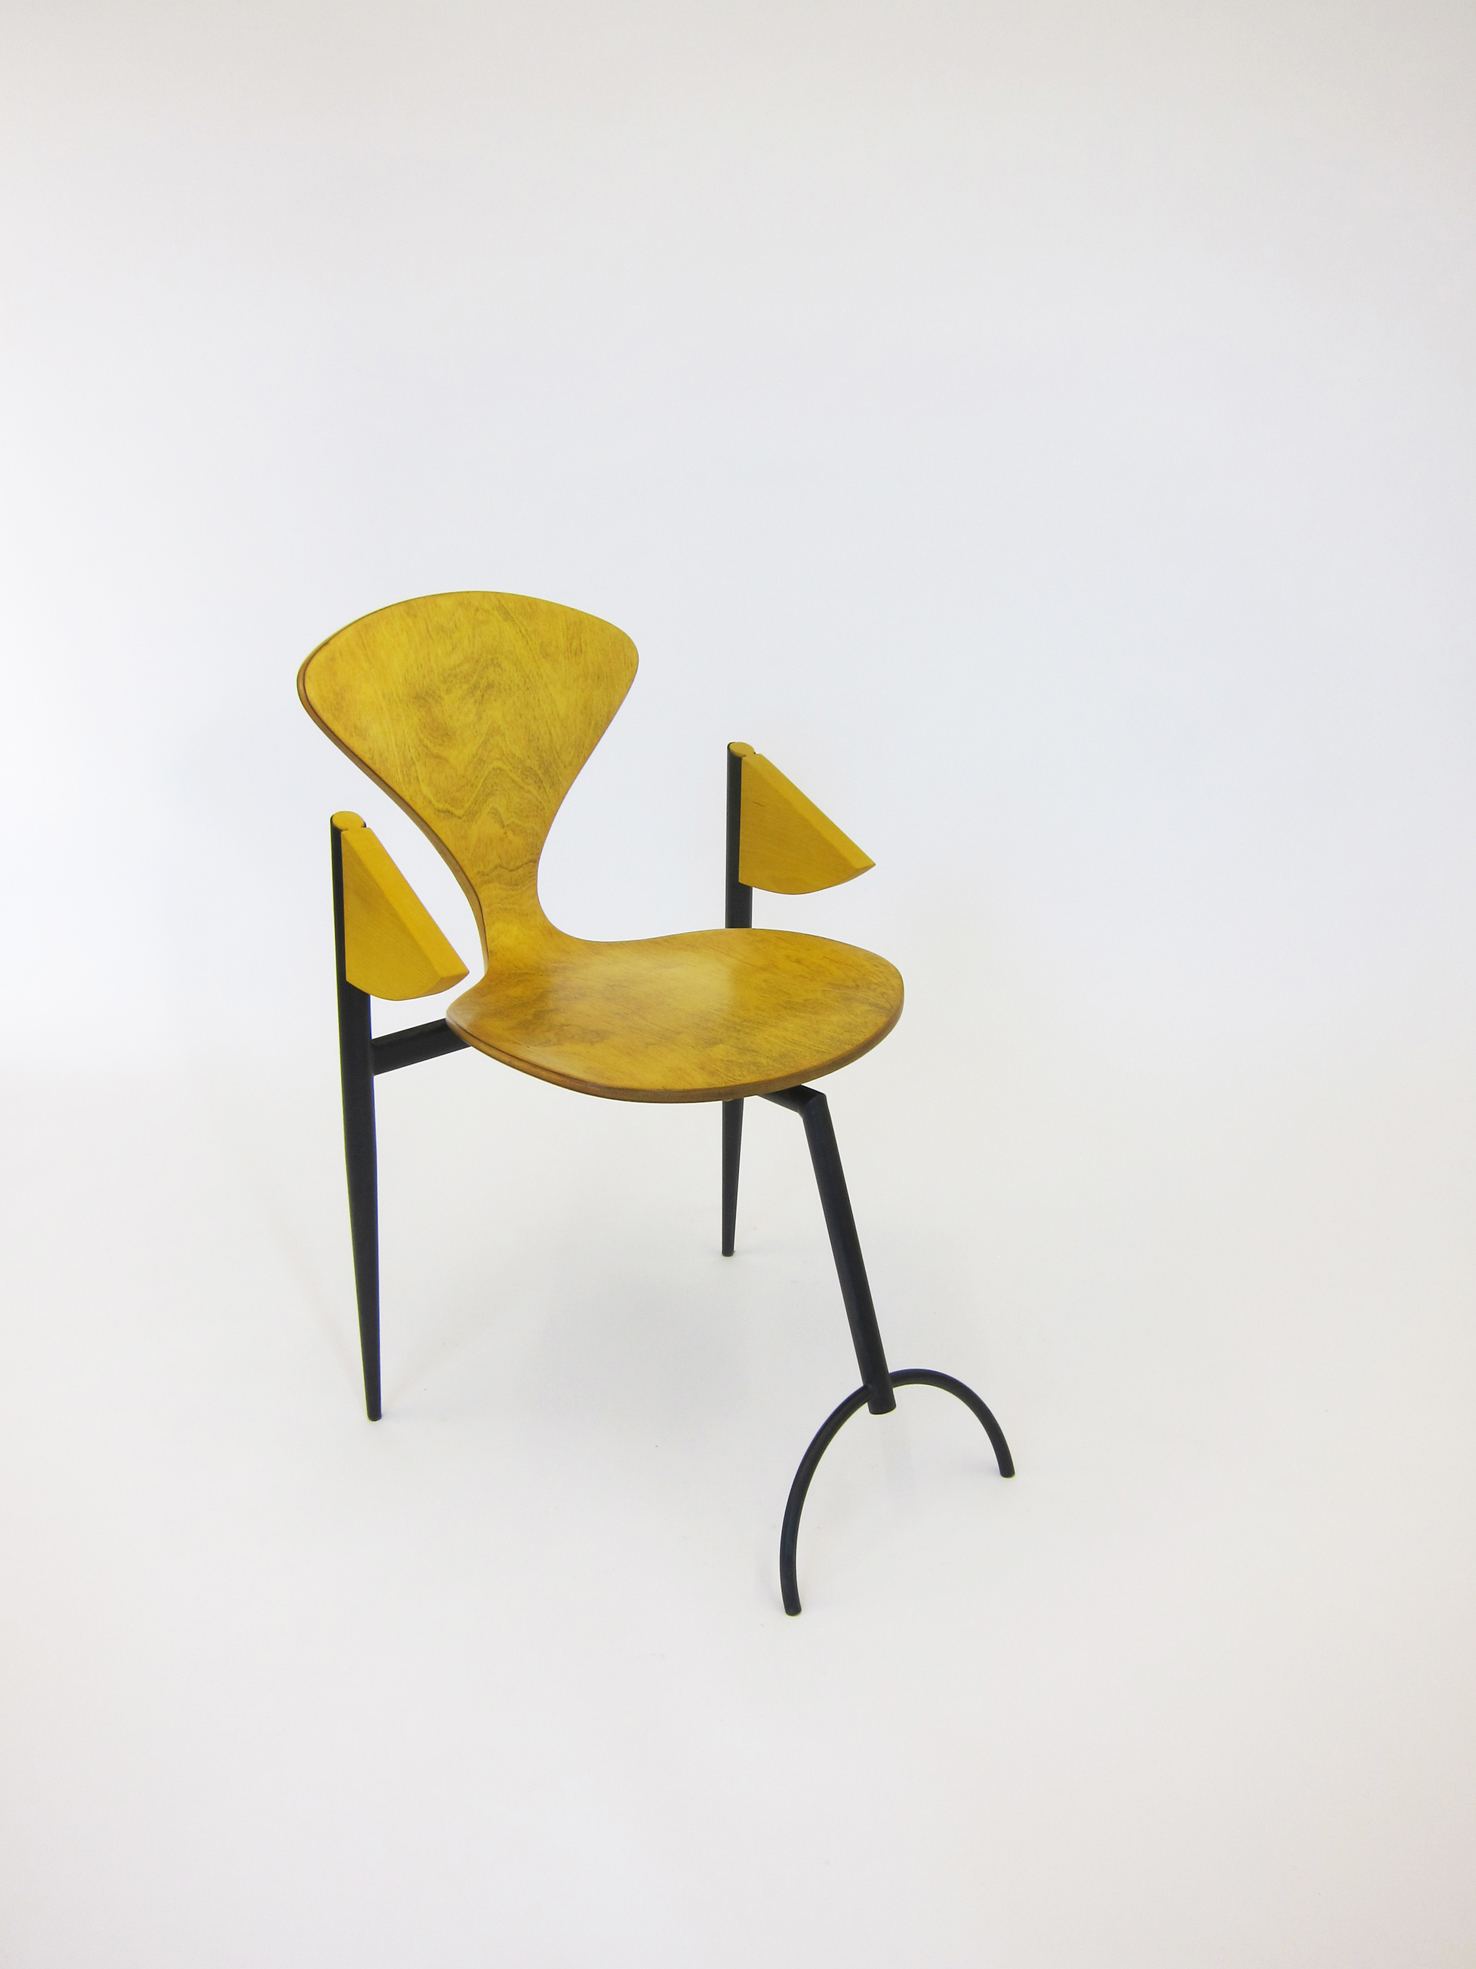 Yellowed Chair, appropriated plywood chair, metal frame, 81 x 51.5 x 65 cm